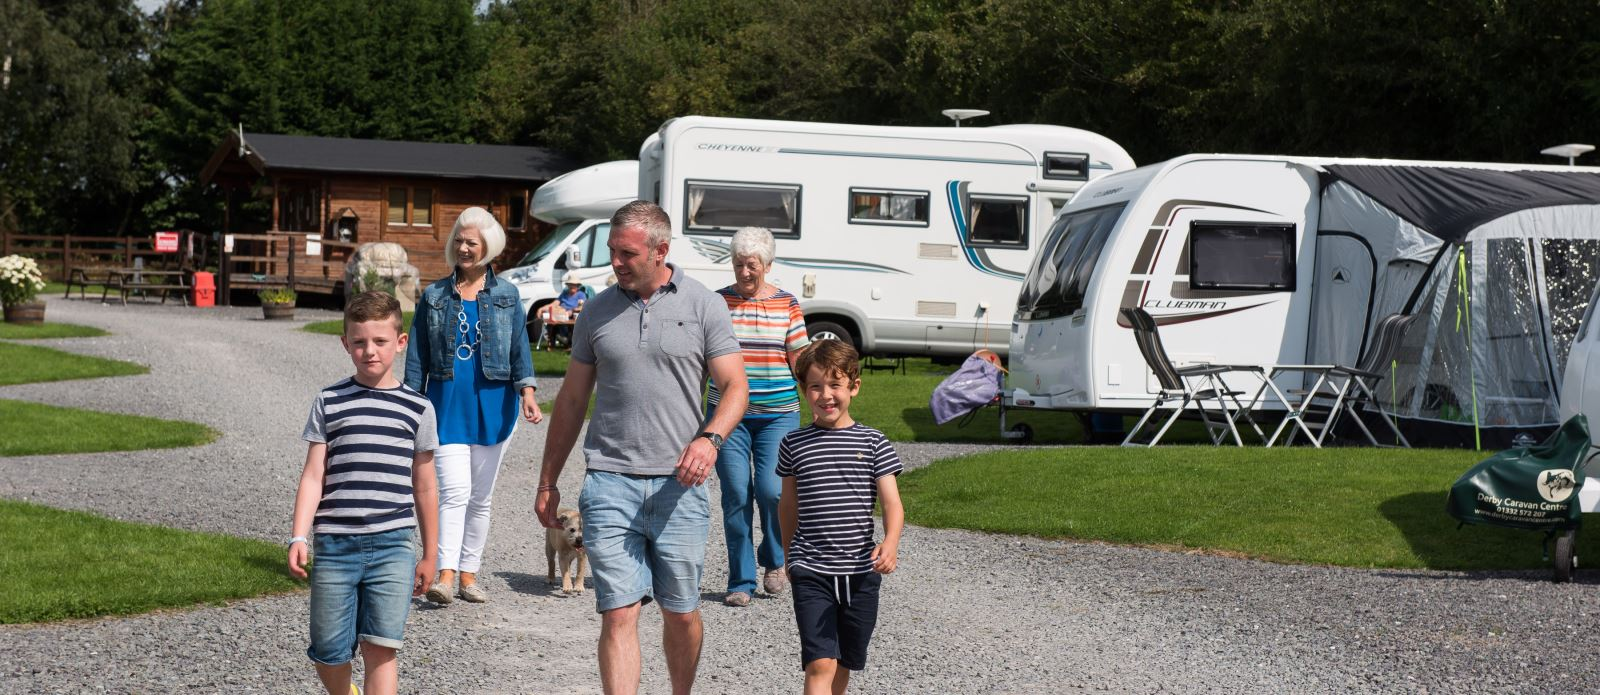 The Camping and Caravanning Club's Ashbourne site